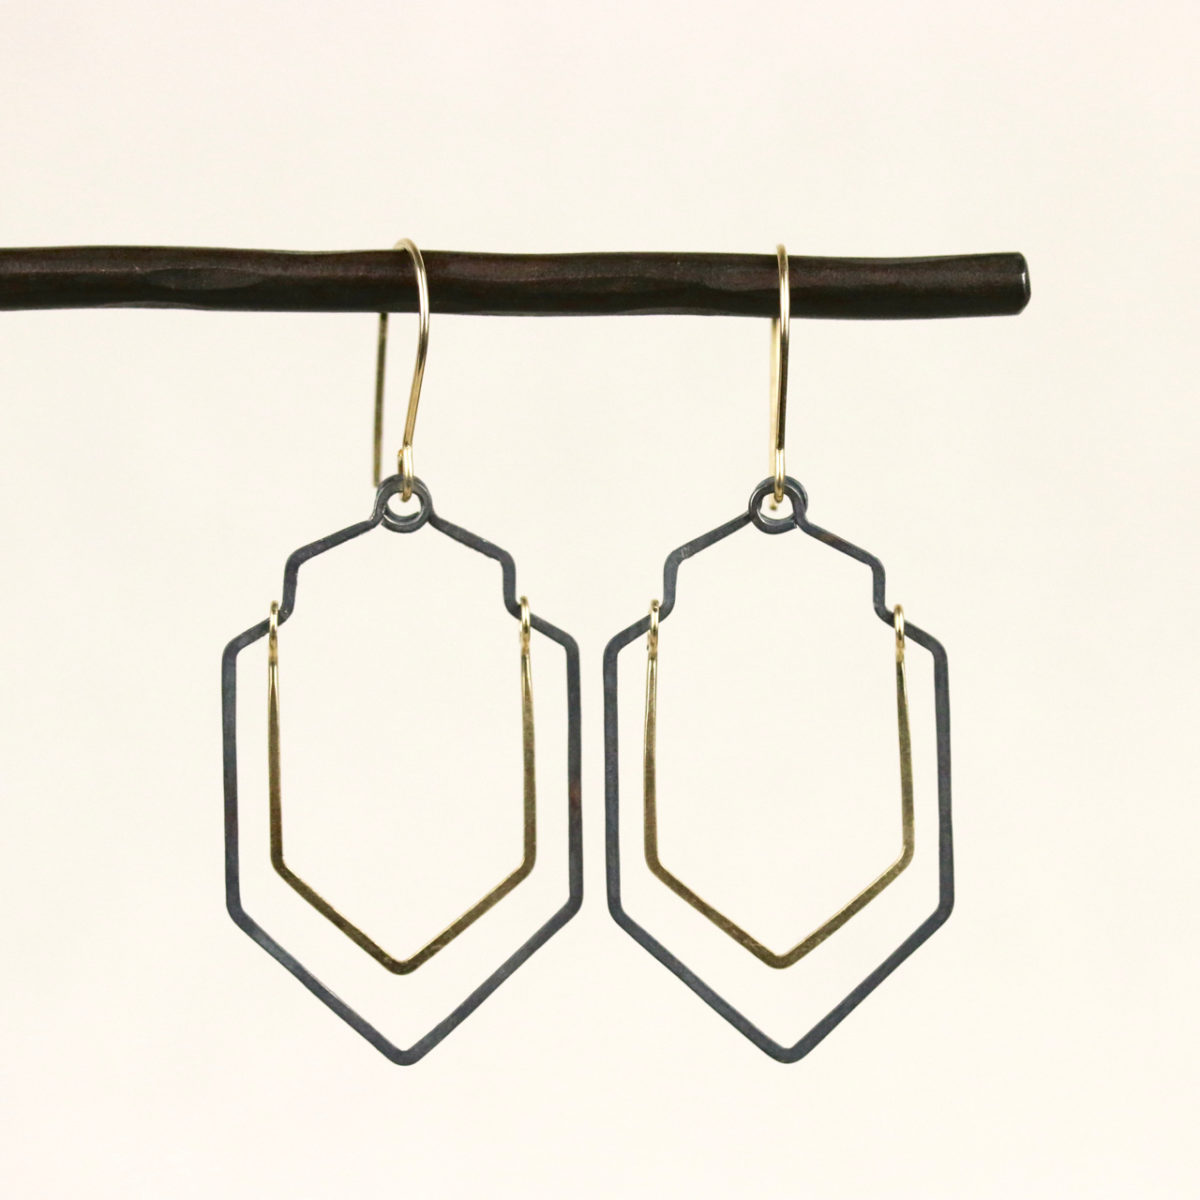 gold-fill-and-oxidized-sterling-silver-earrings